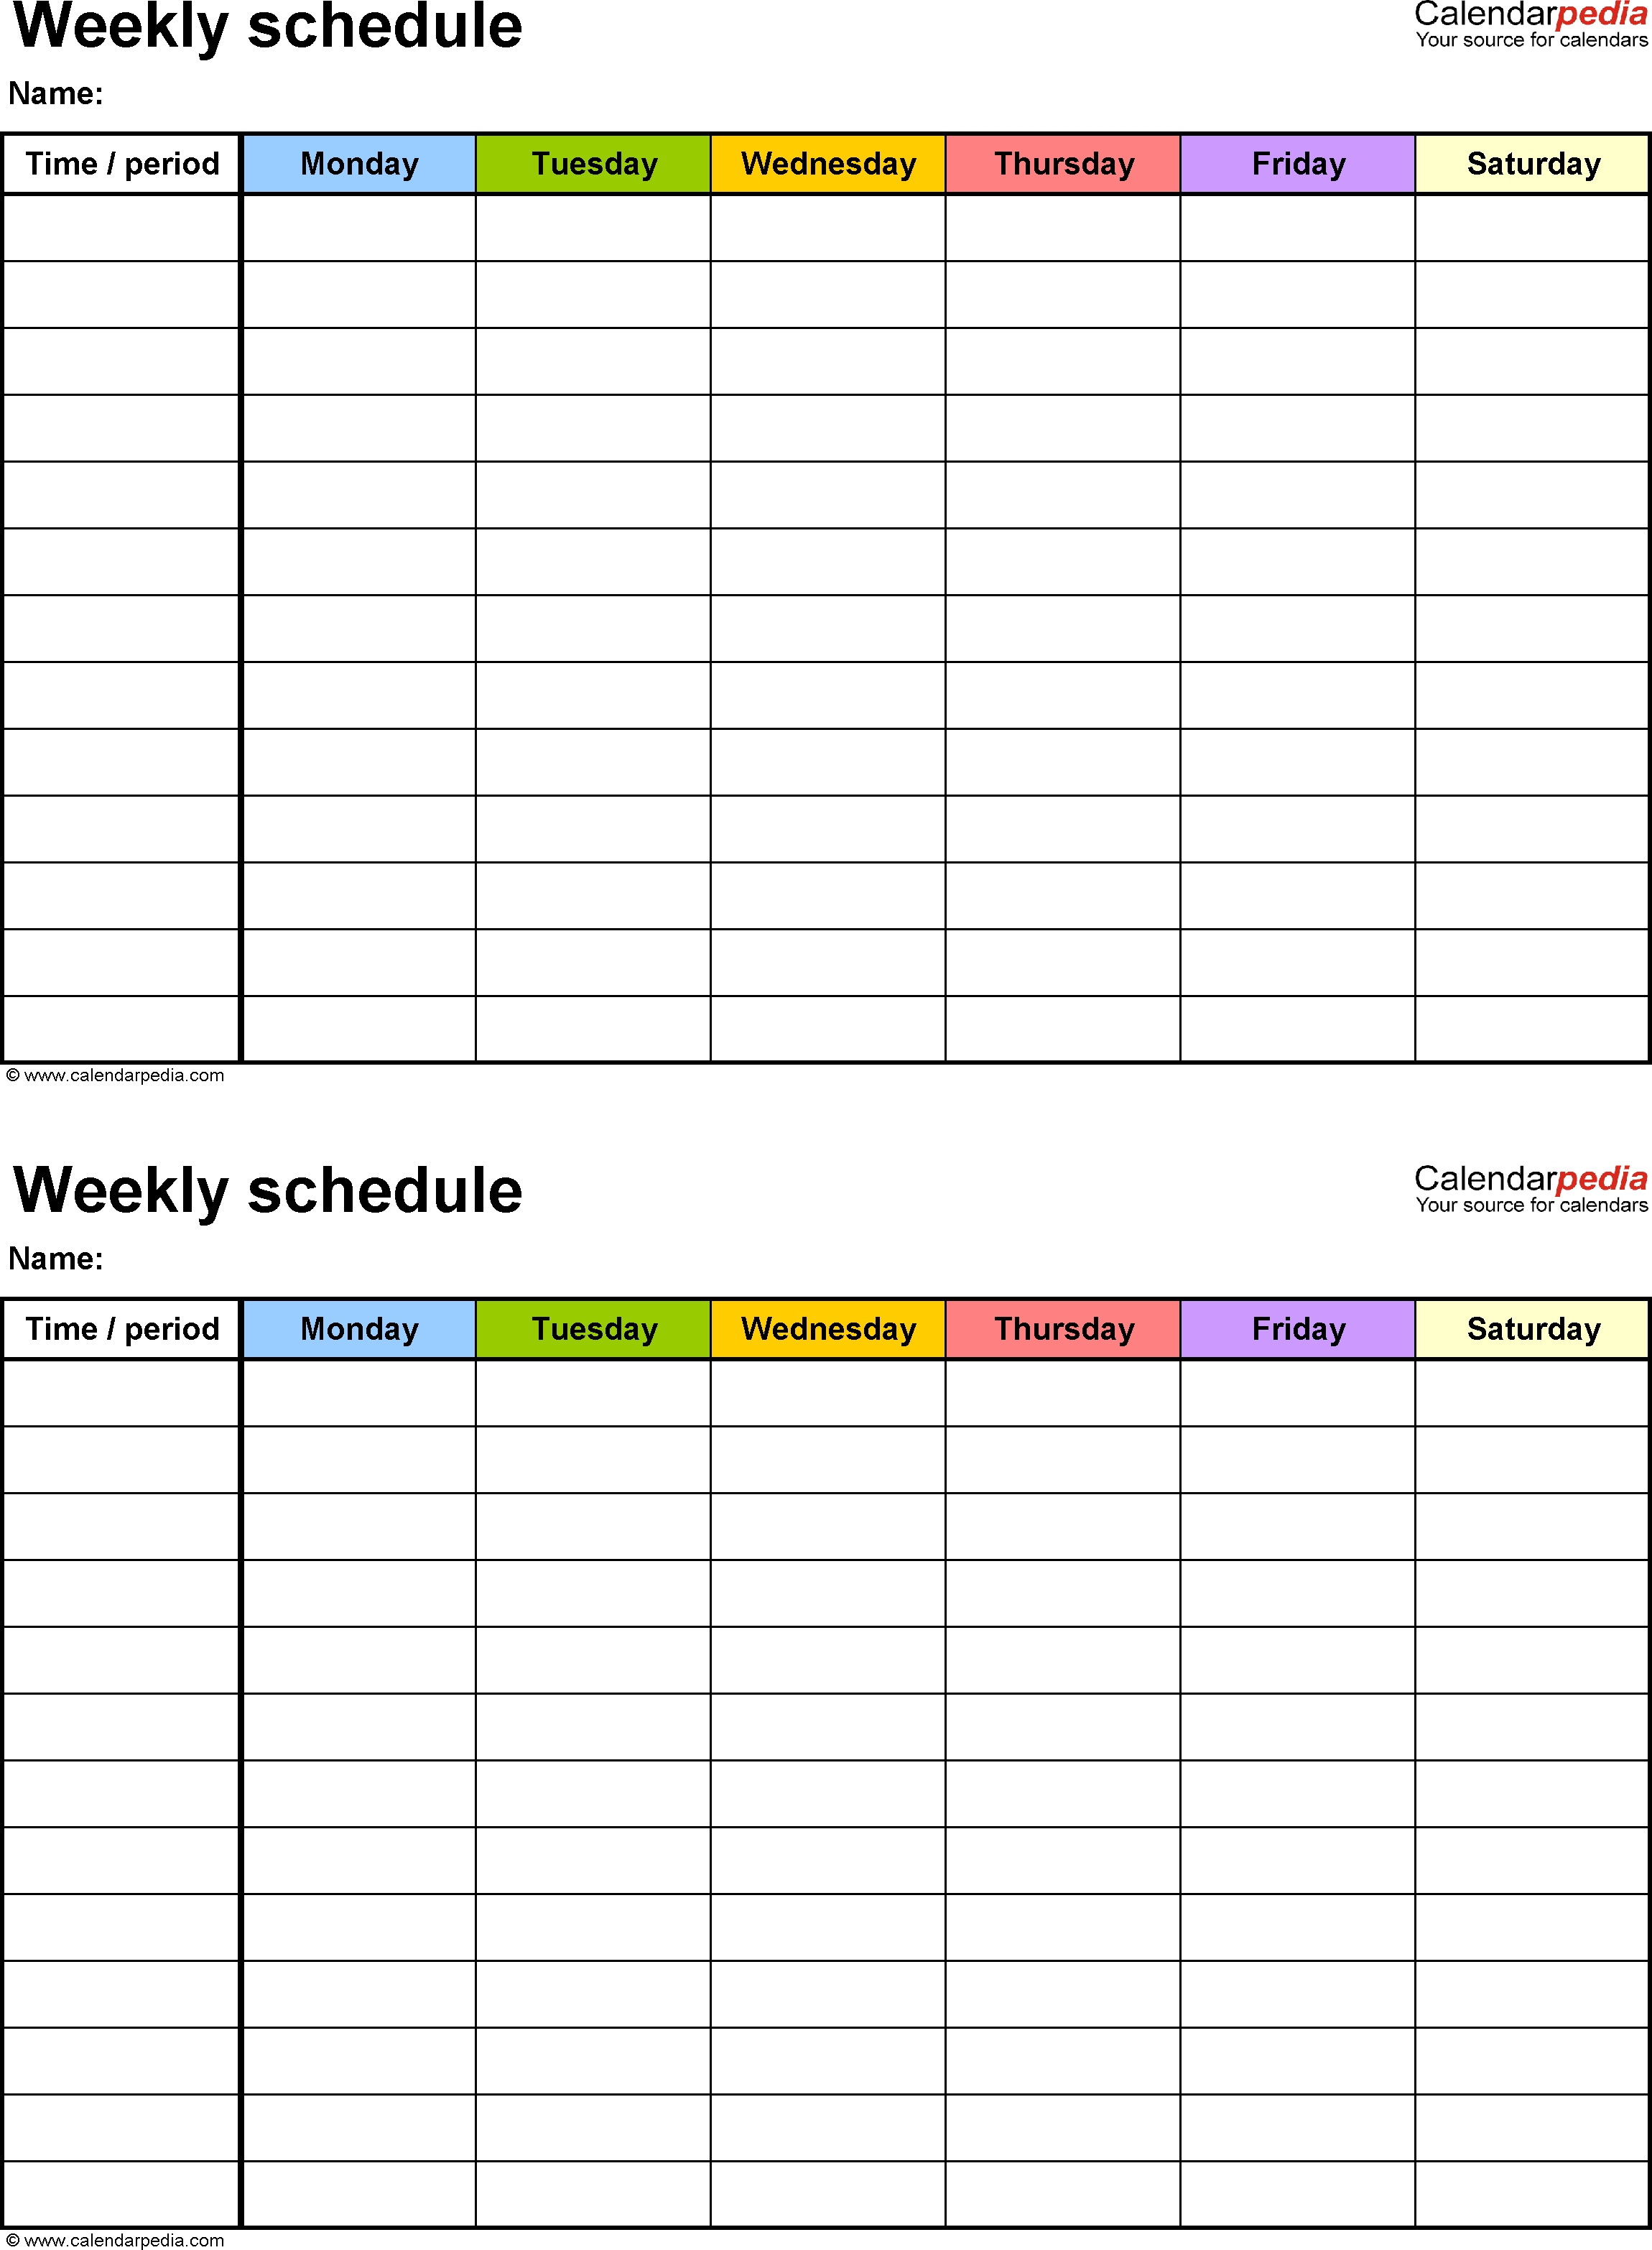 Free Weekly Schedule Templates For Word - 18 Templates regarding 2 Week Blank Calendar Printable